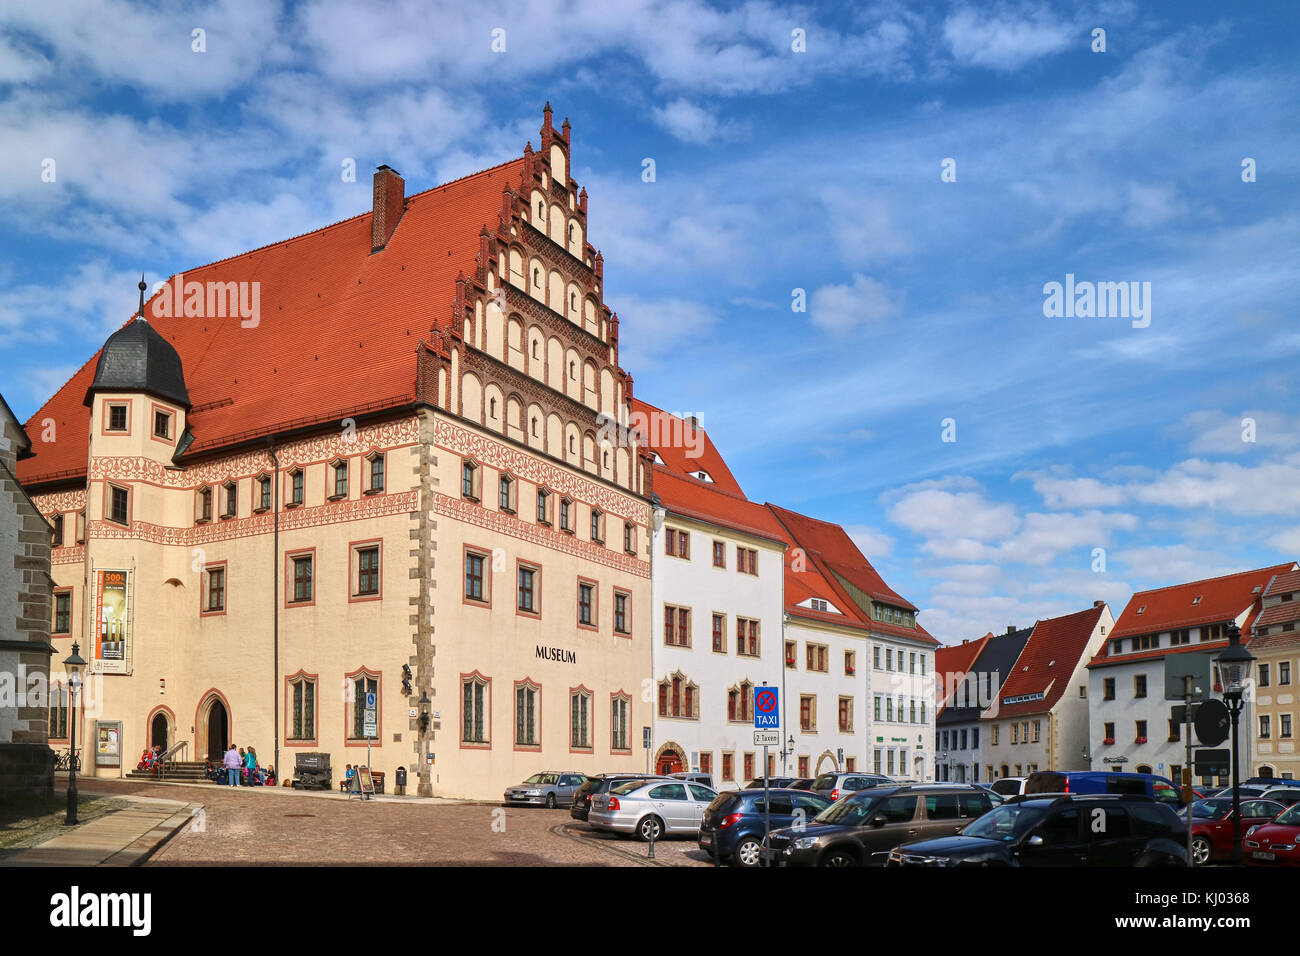 Europe, Germany, Saxony, Freiberg city, Unter Markt square - Stock Image